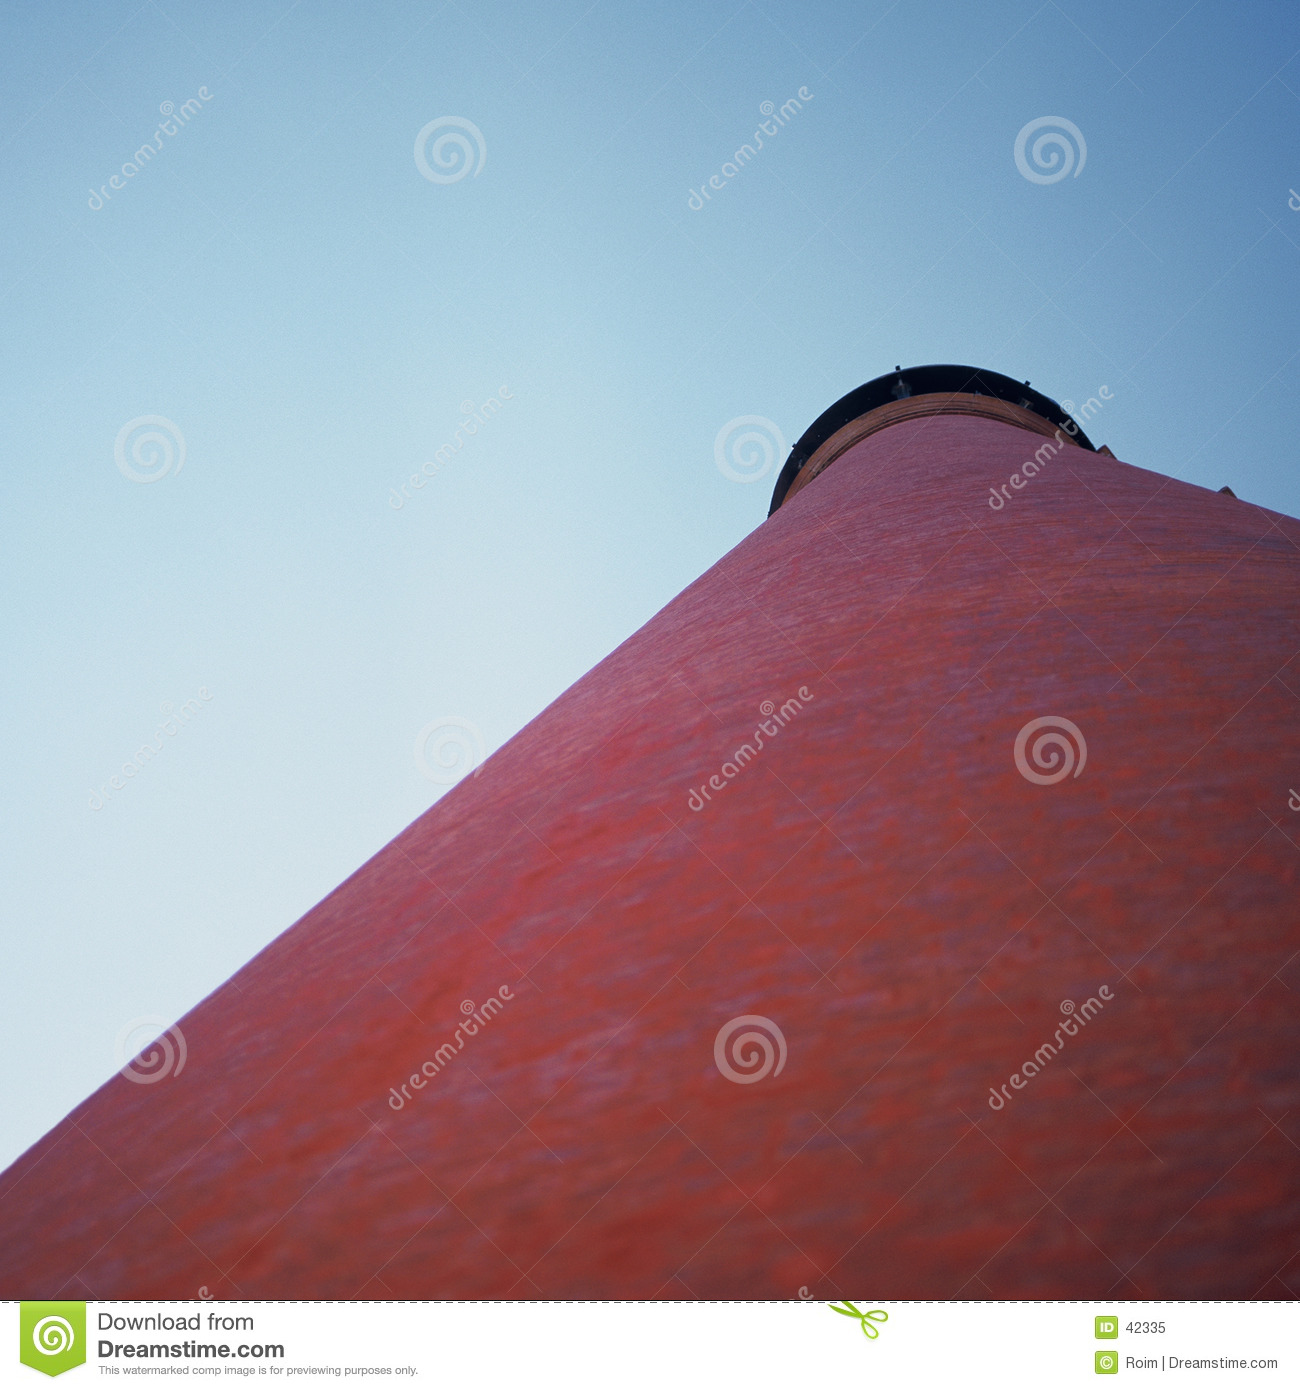 Red conical roof